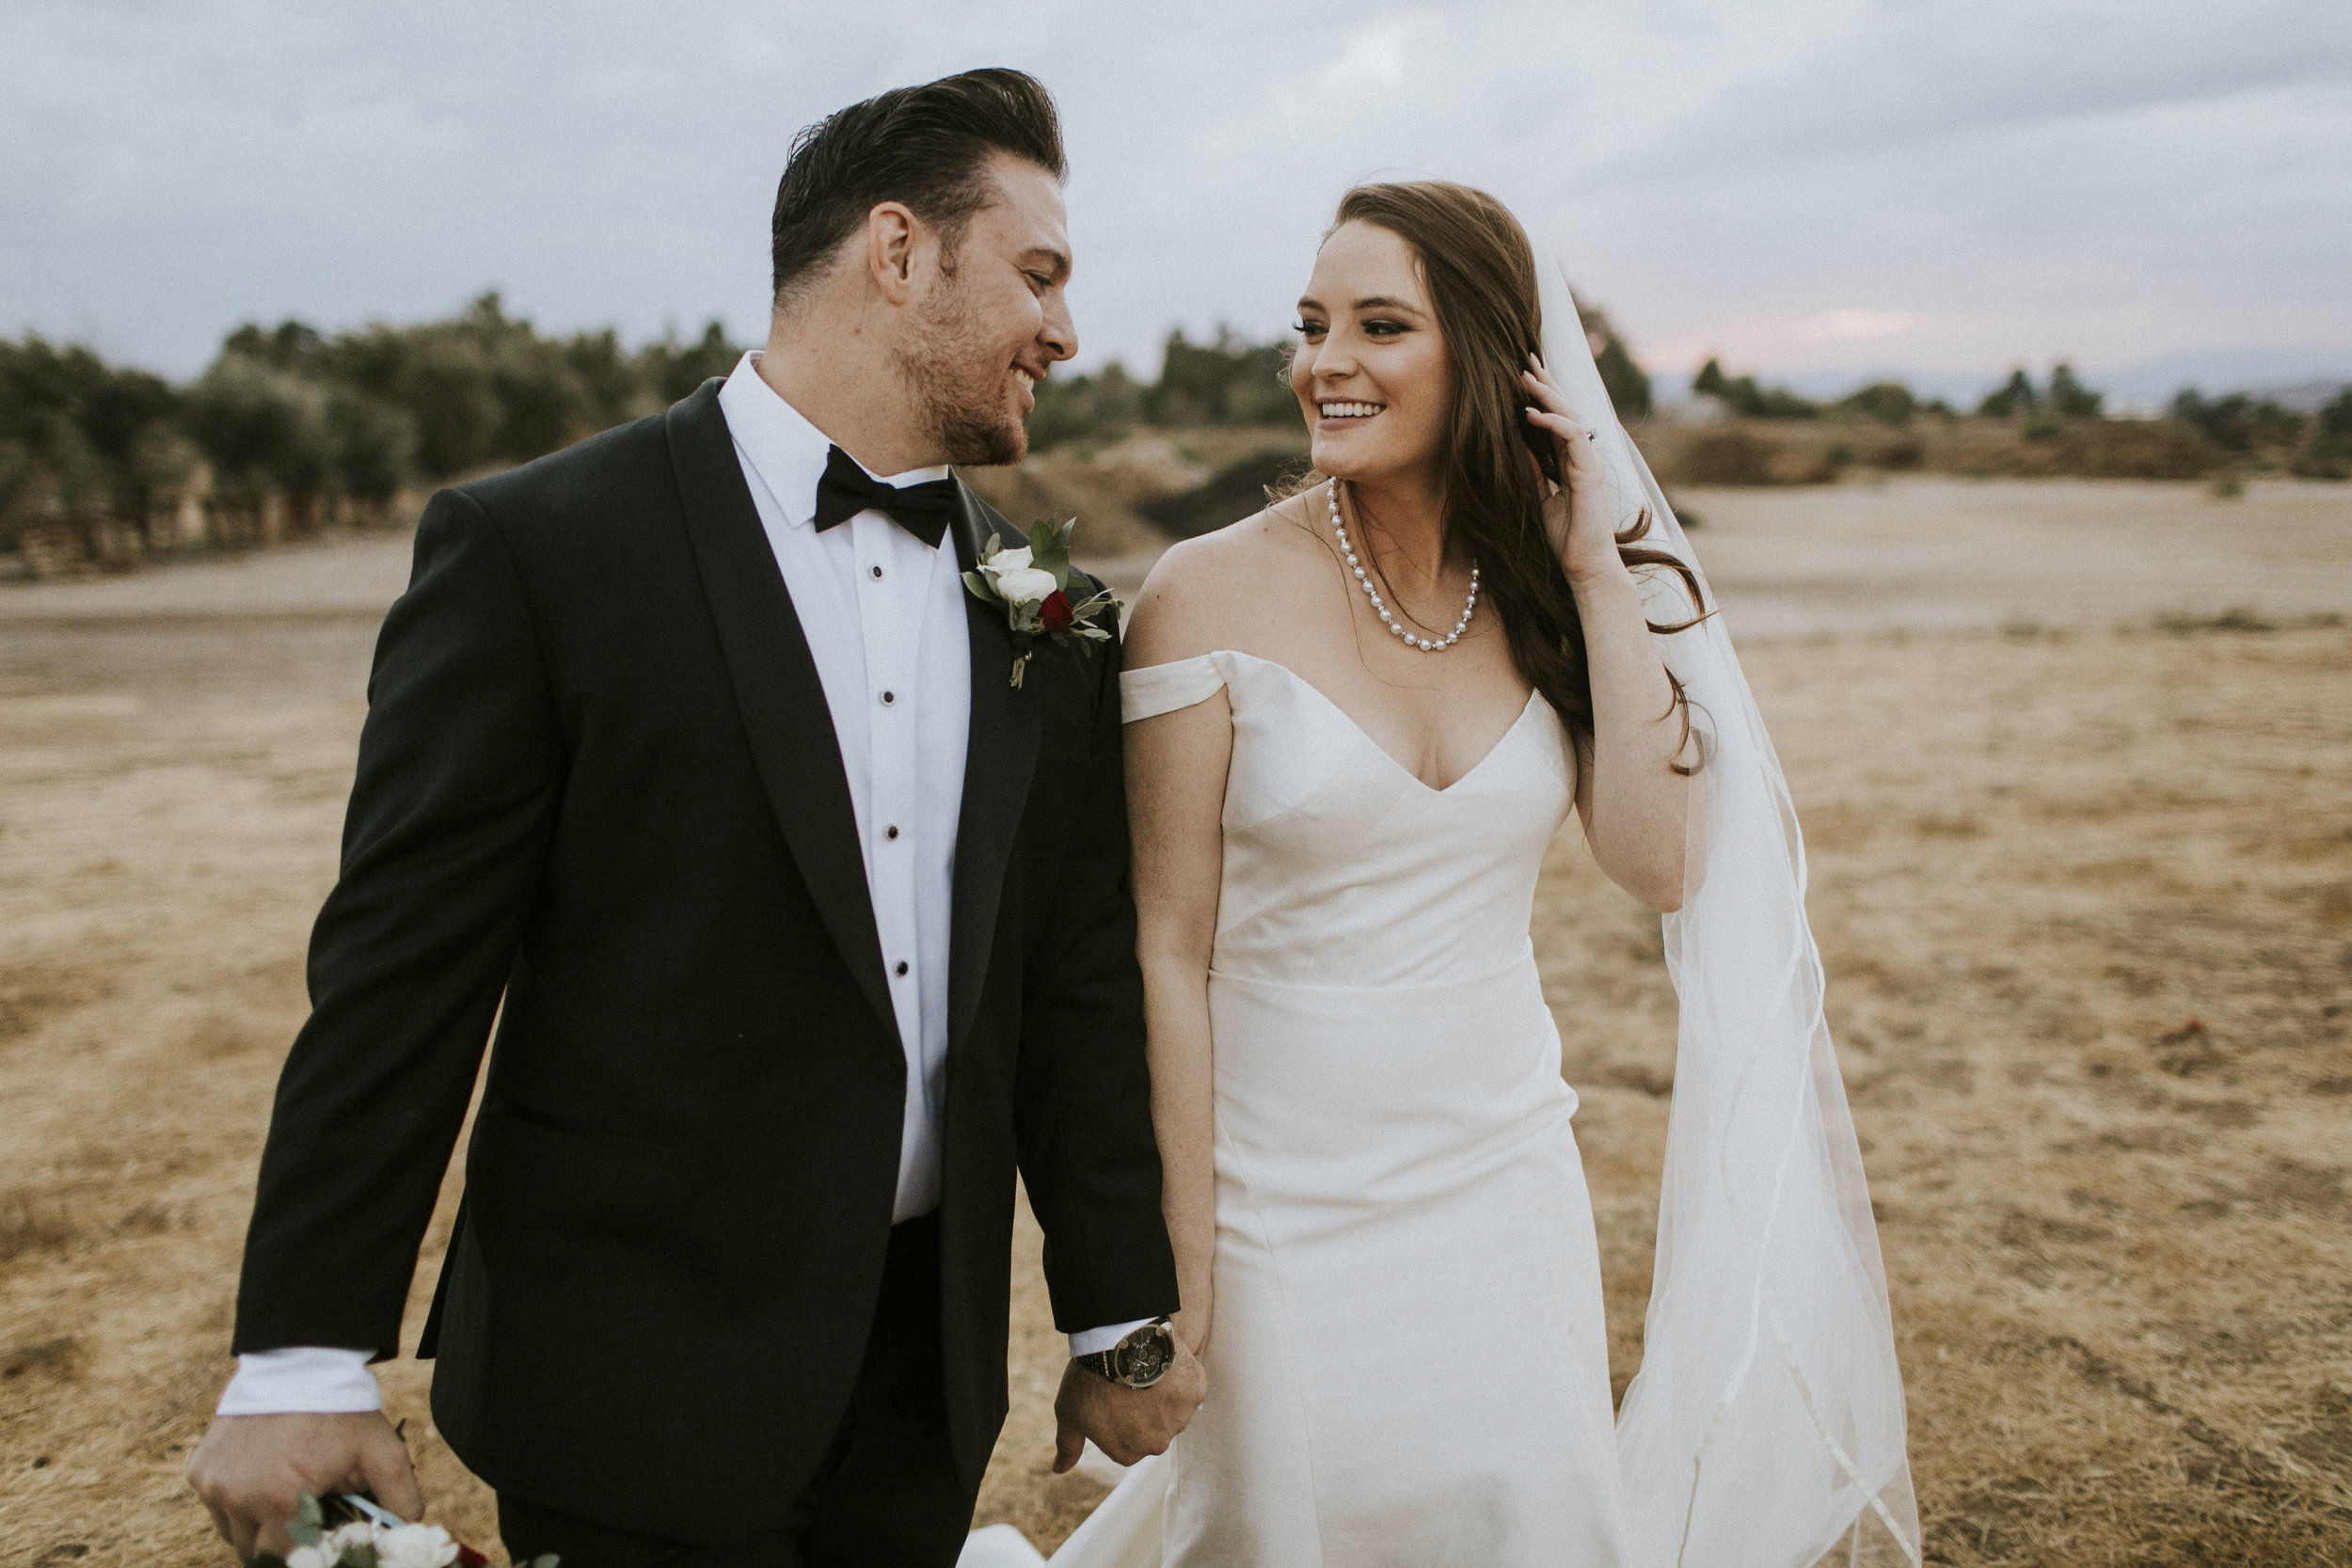 Domenica Beauty _ Hair and Makeup Artist _Wedding _ Temecula, CA _ Catherine and Darryl _ 37.JPG